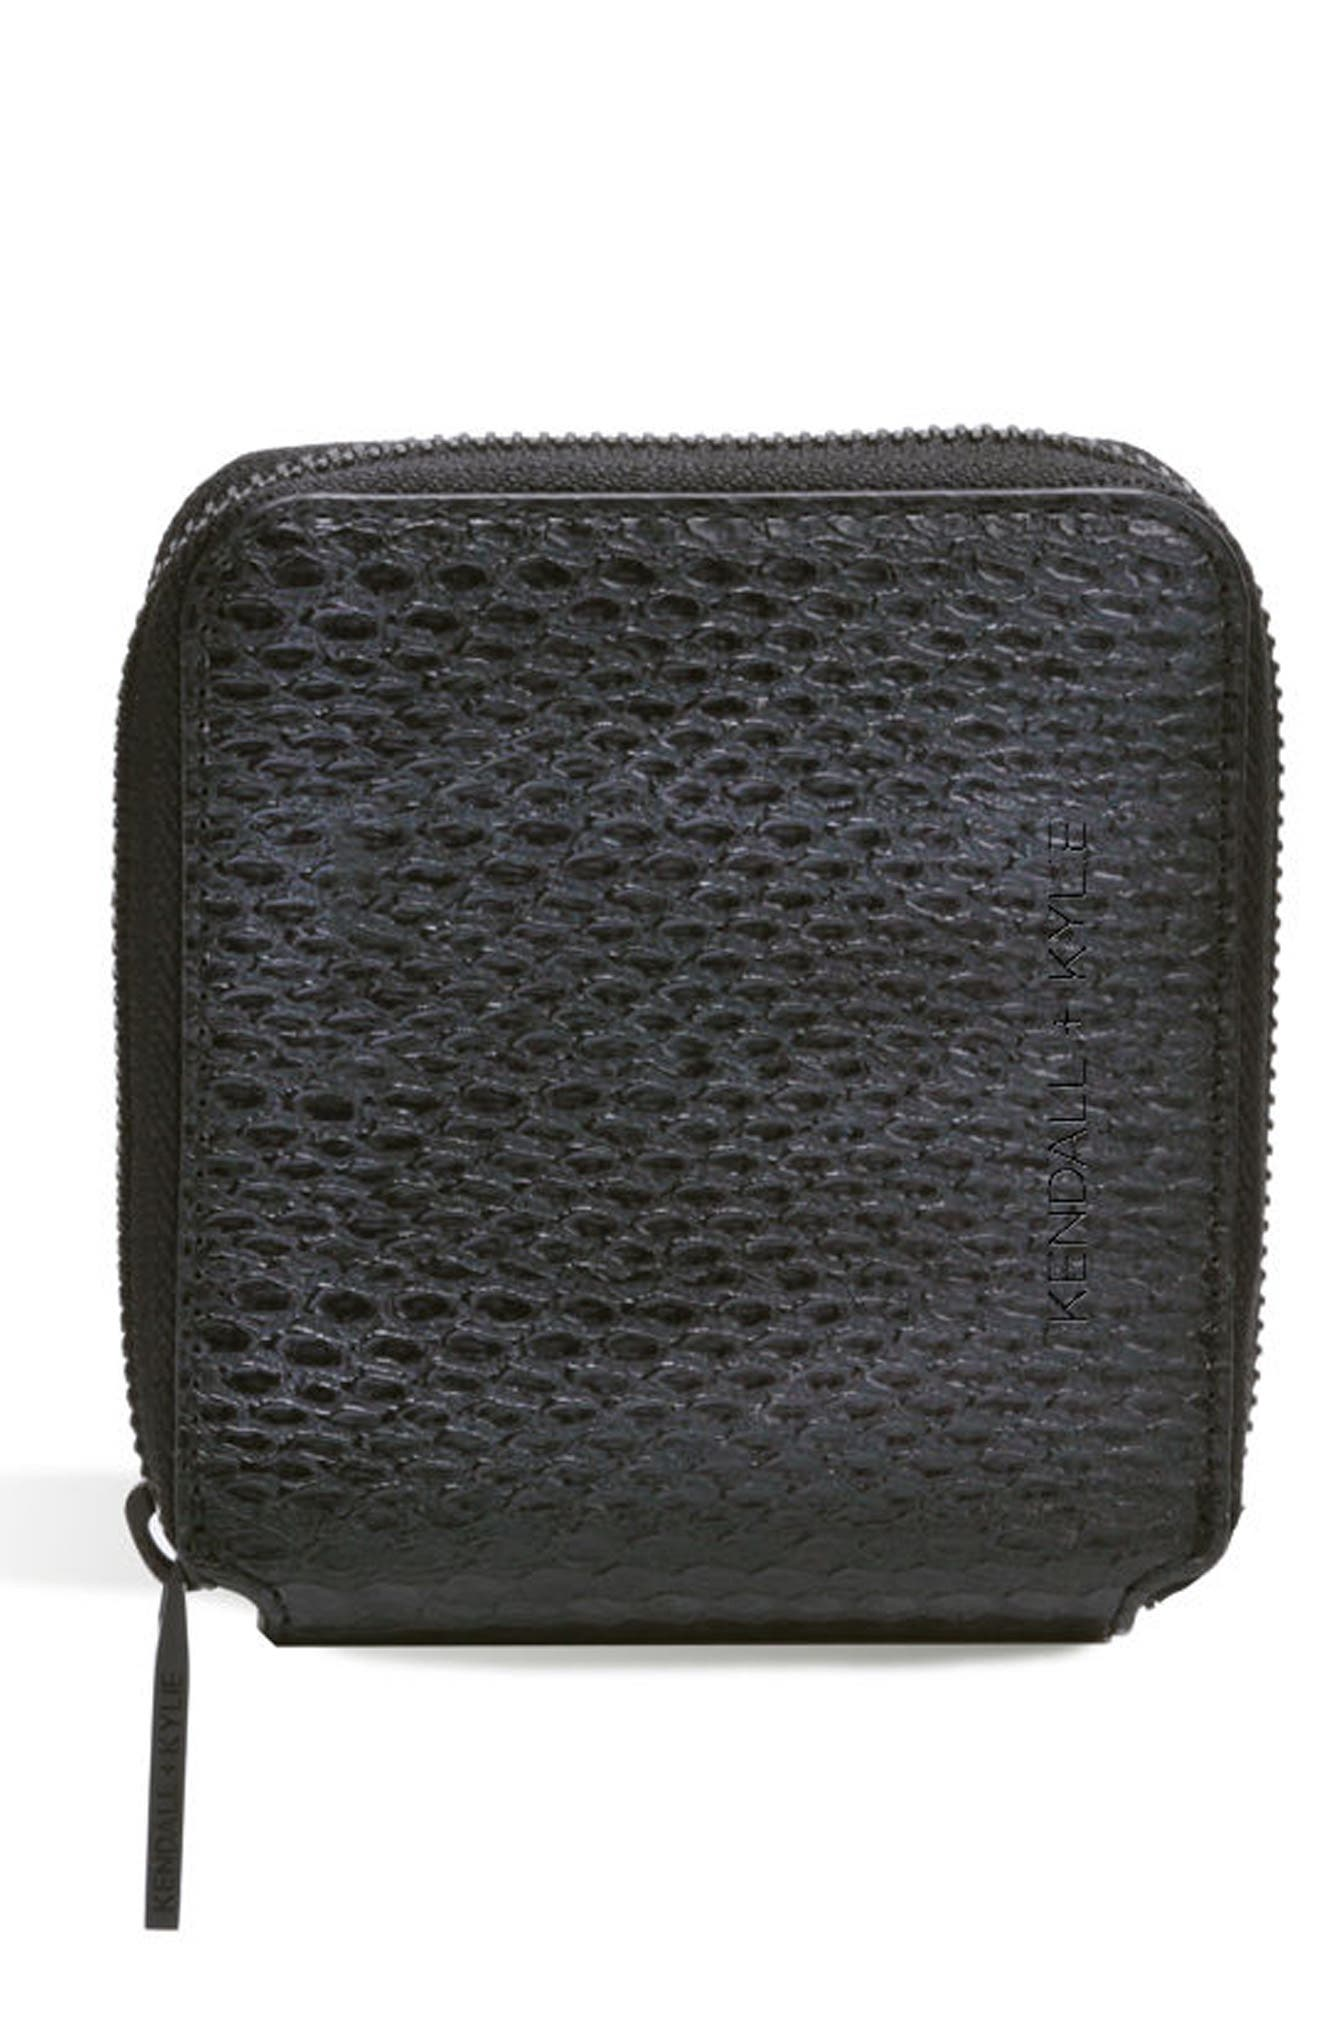 Brodie Faux Leather Wallet,                             Main thumbnail 1, color,                             Black Snake